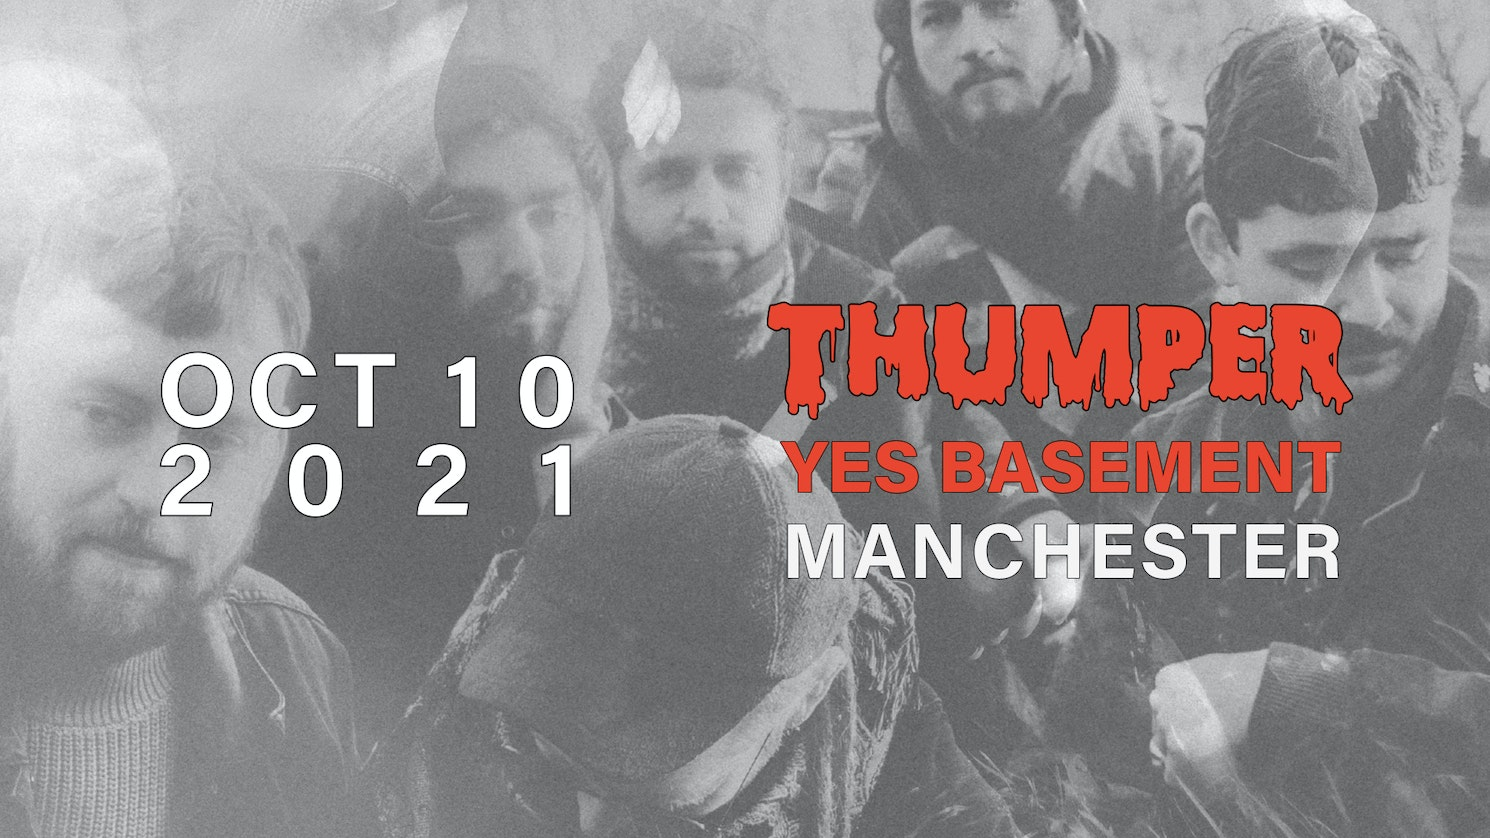 Thumper   Manchester, YES (The Basement)